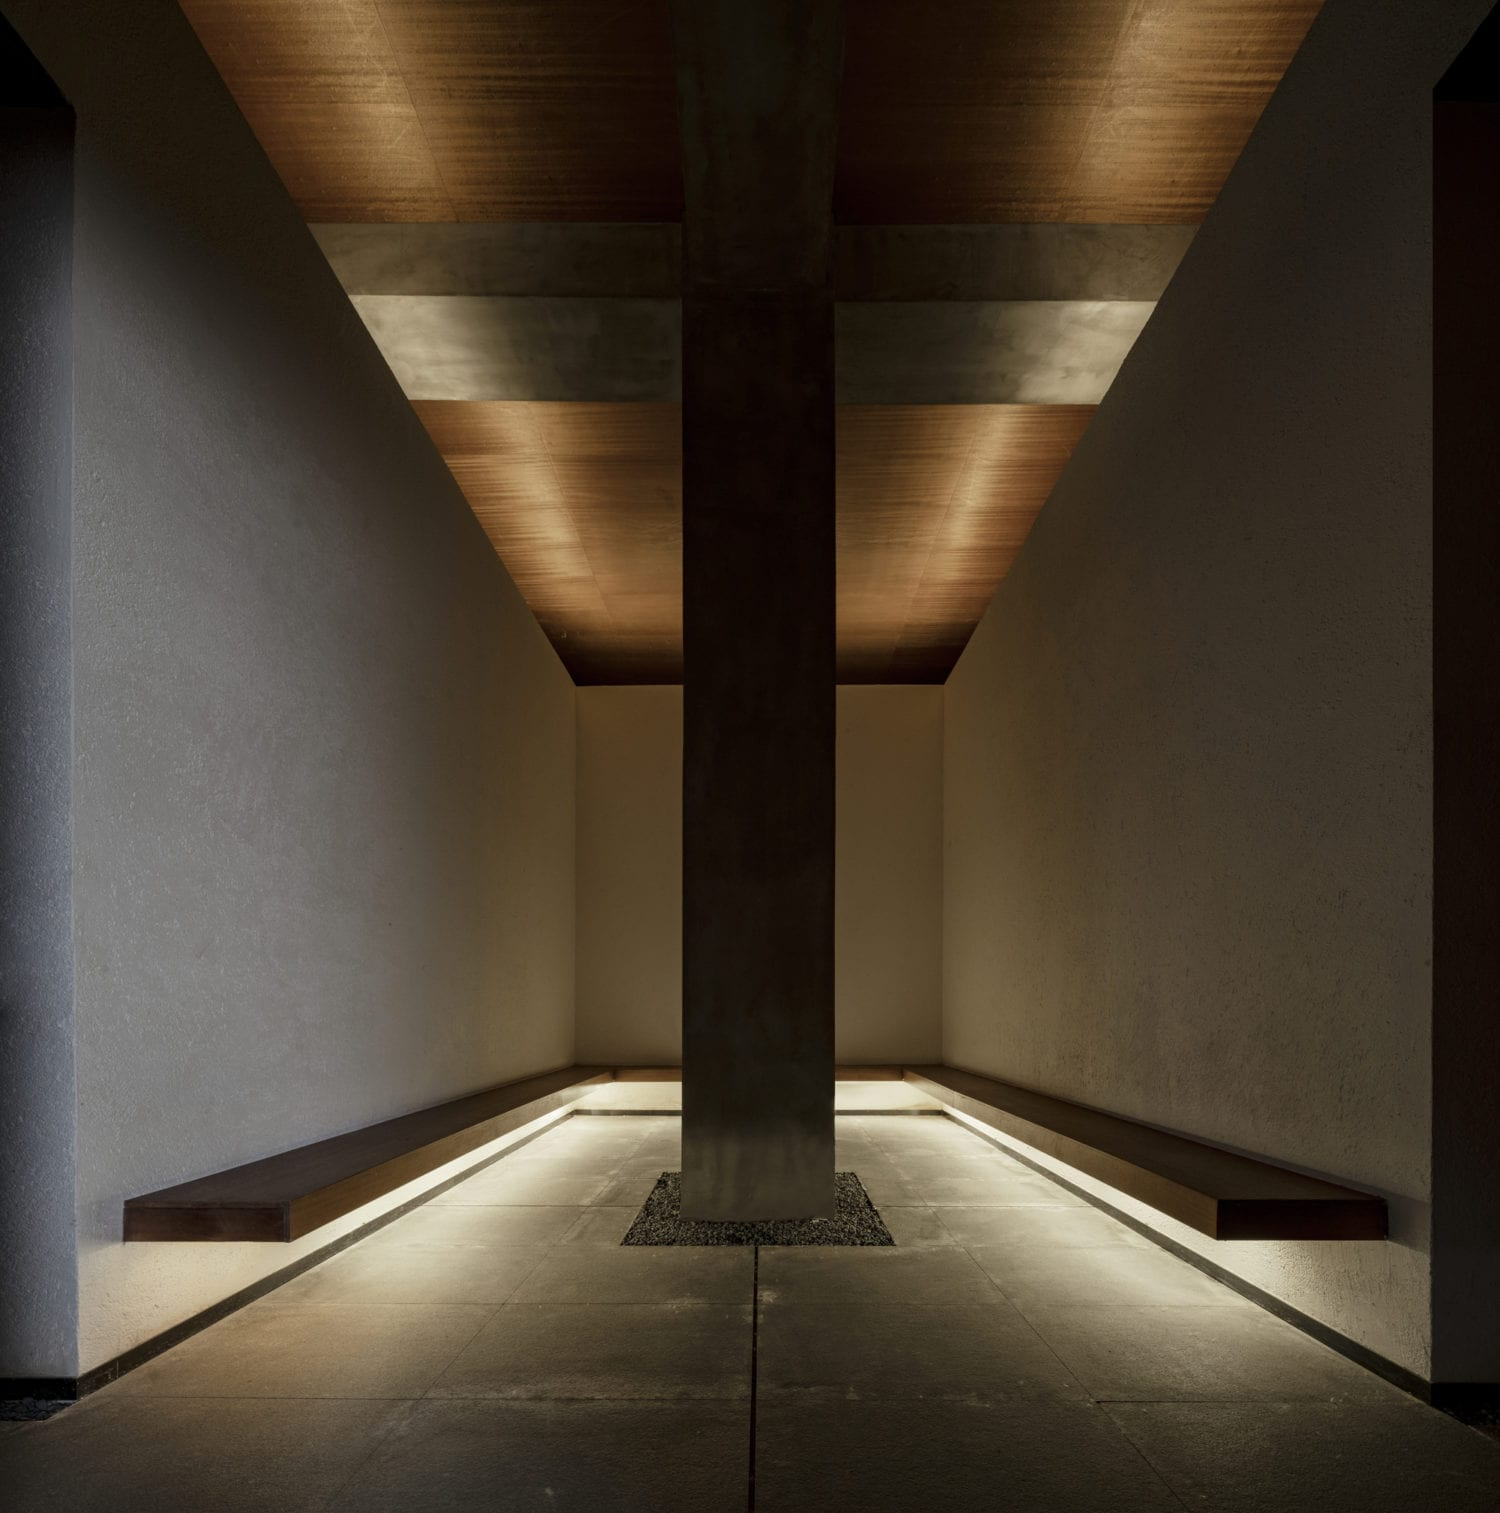 Meditation Hall In Huanghua China By Hil Architects Yellowtrace 04a